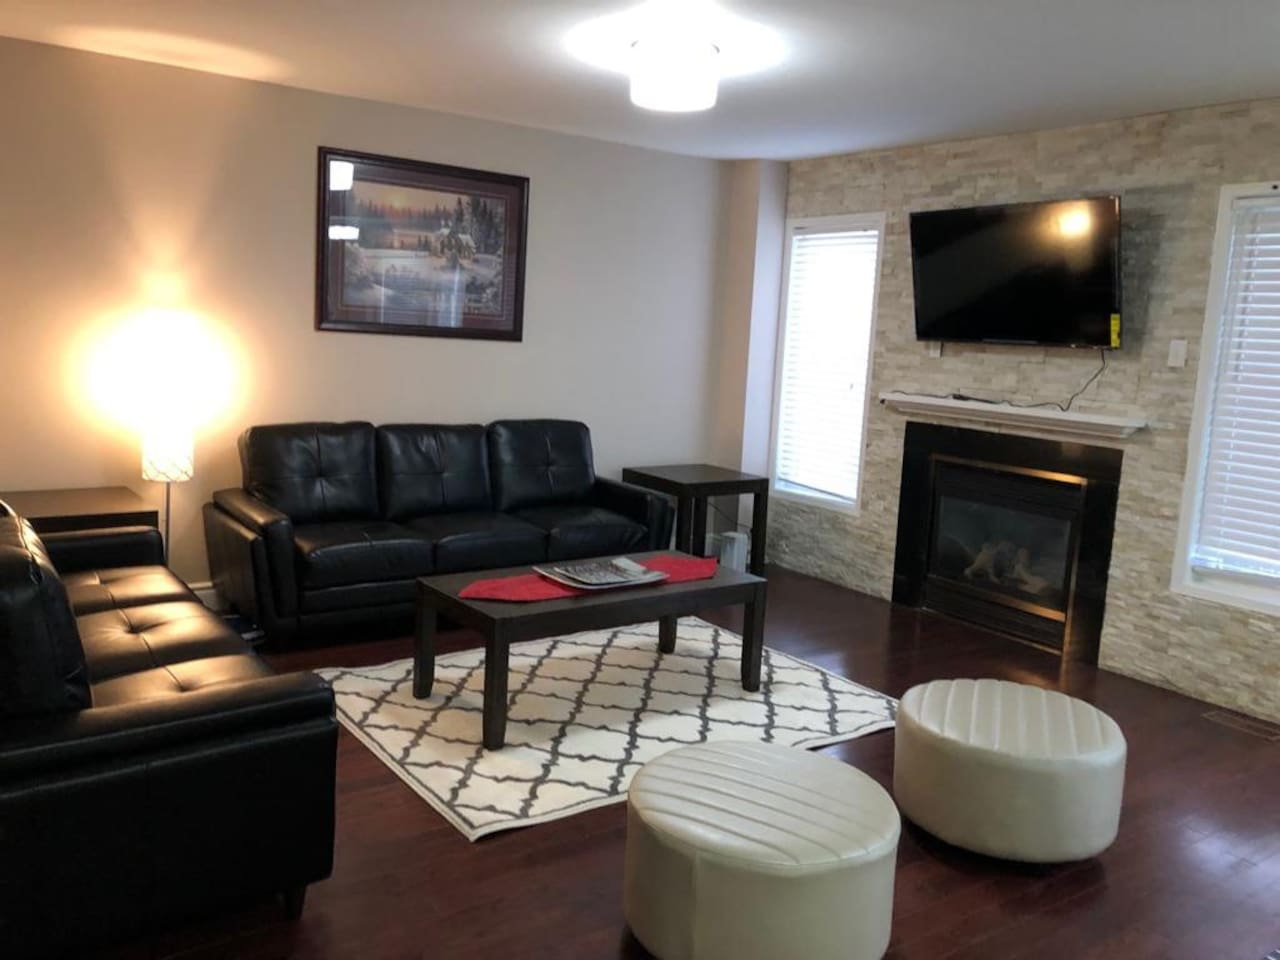 Enjoy family fun in the generously-sized family area graced by a fireplace, huge windows and glass sliding doors that lead out to the patio.